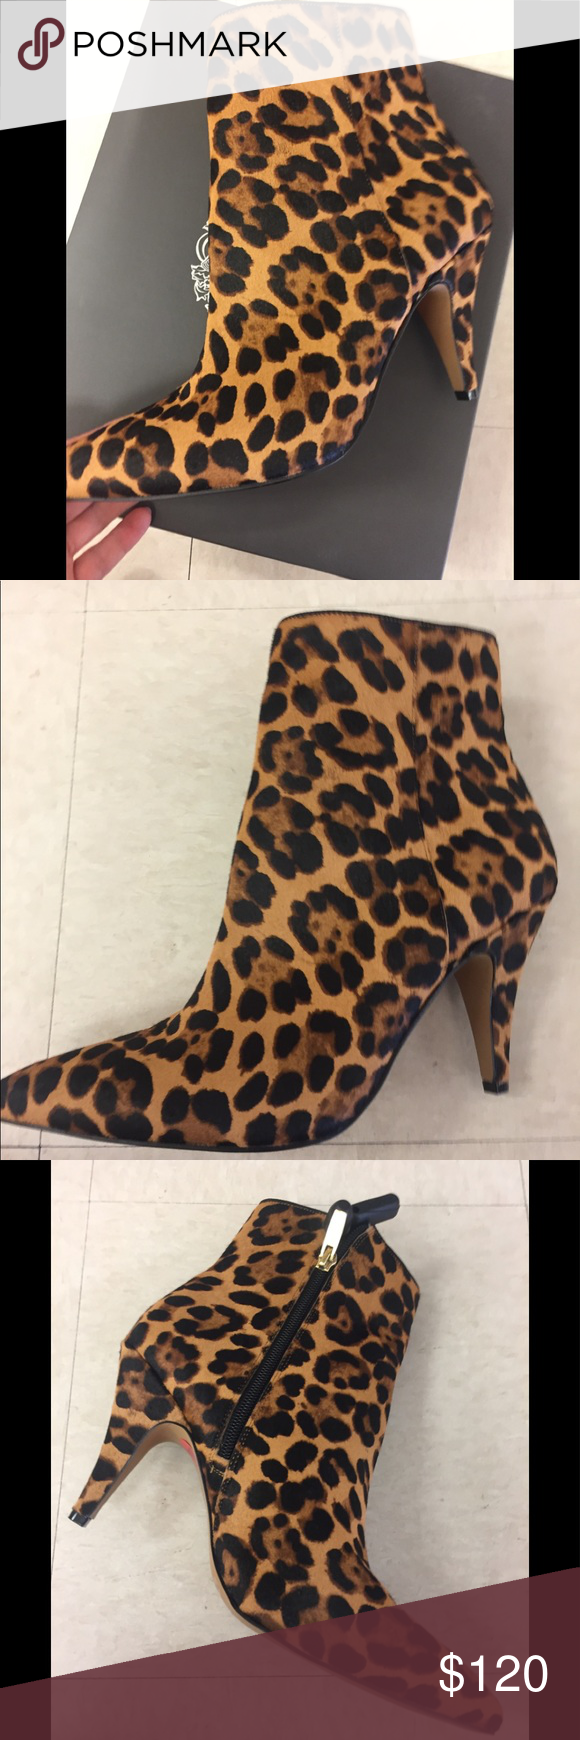 vince camuto leopard ankle boots